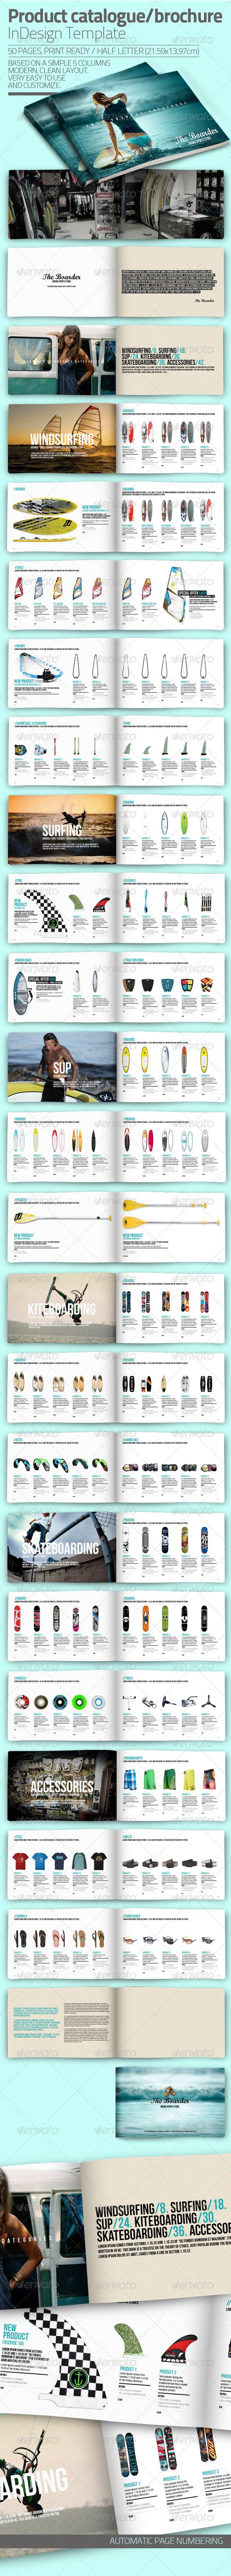 InDesign Catalogue Template | Brochures, Template and Catalog